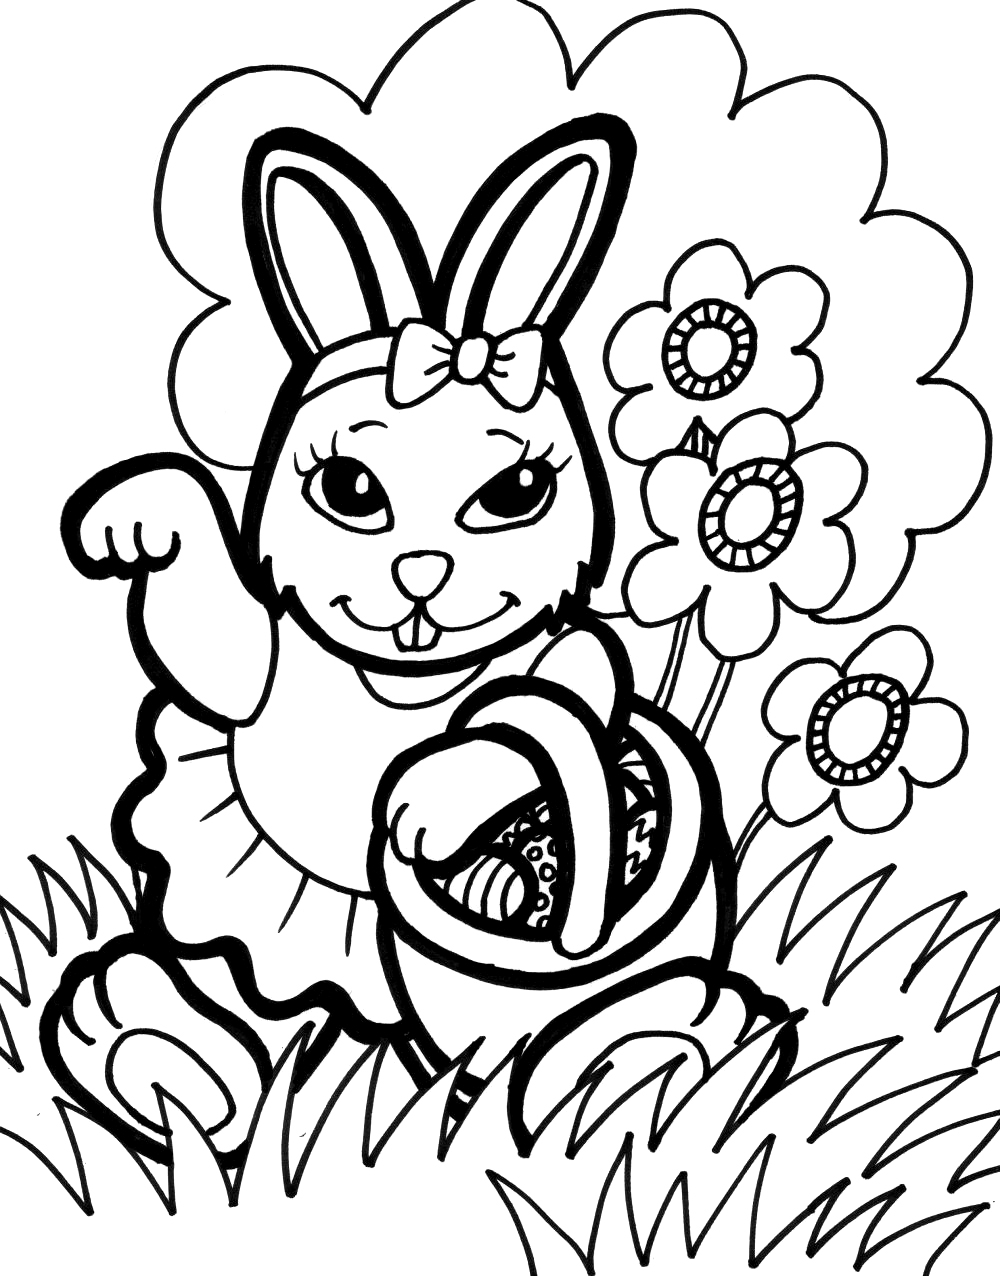 bunny coloring pages free - bunny coloring pages